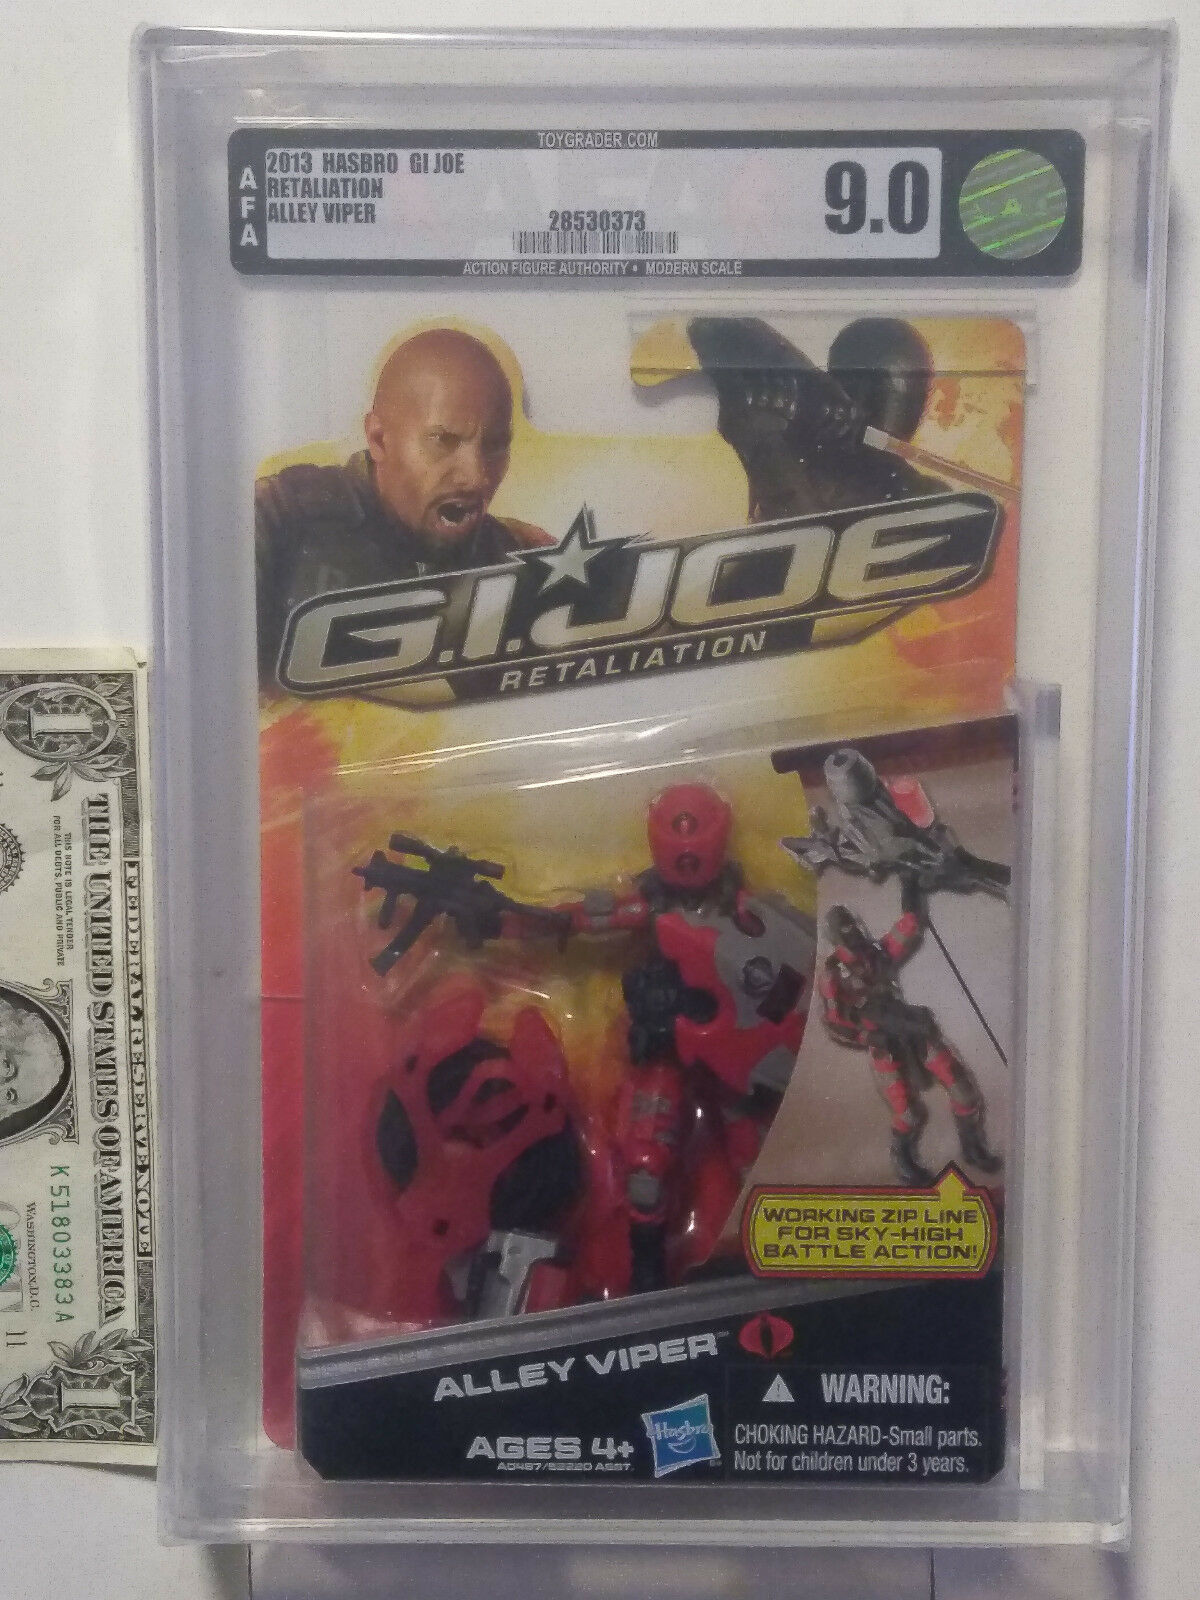 AFA 9.0 G.I. Joe Retaliation Alley Viper 2013 made by Hasbro in 2013 28530373